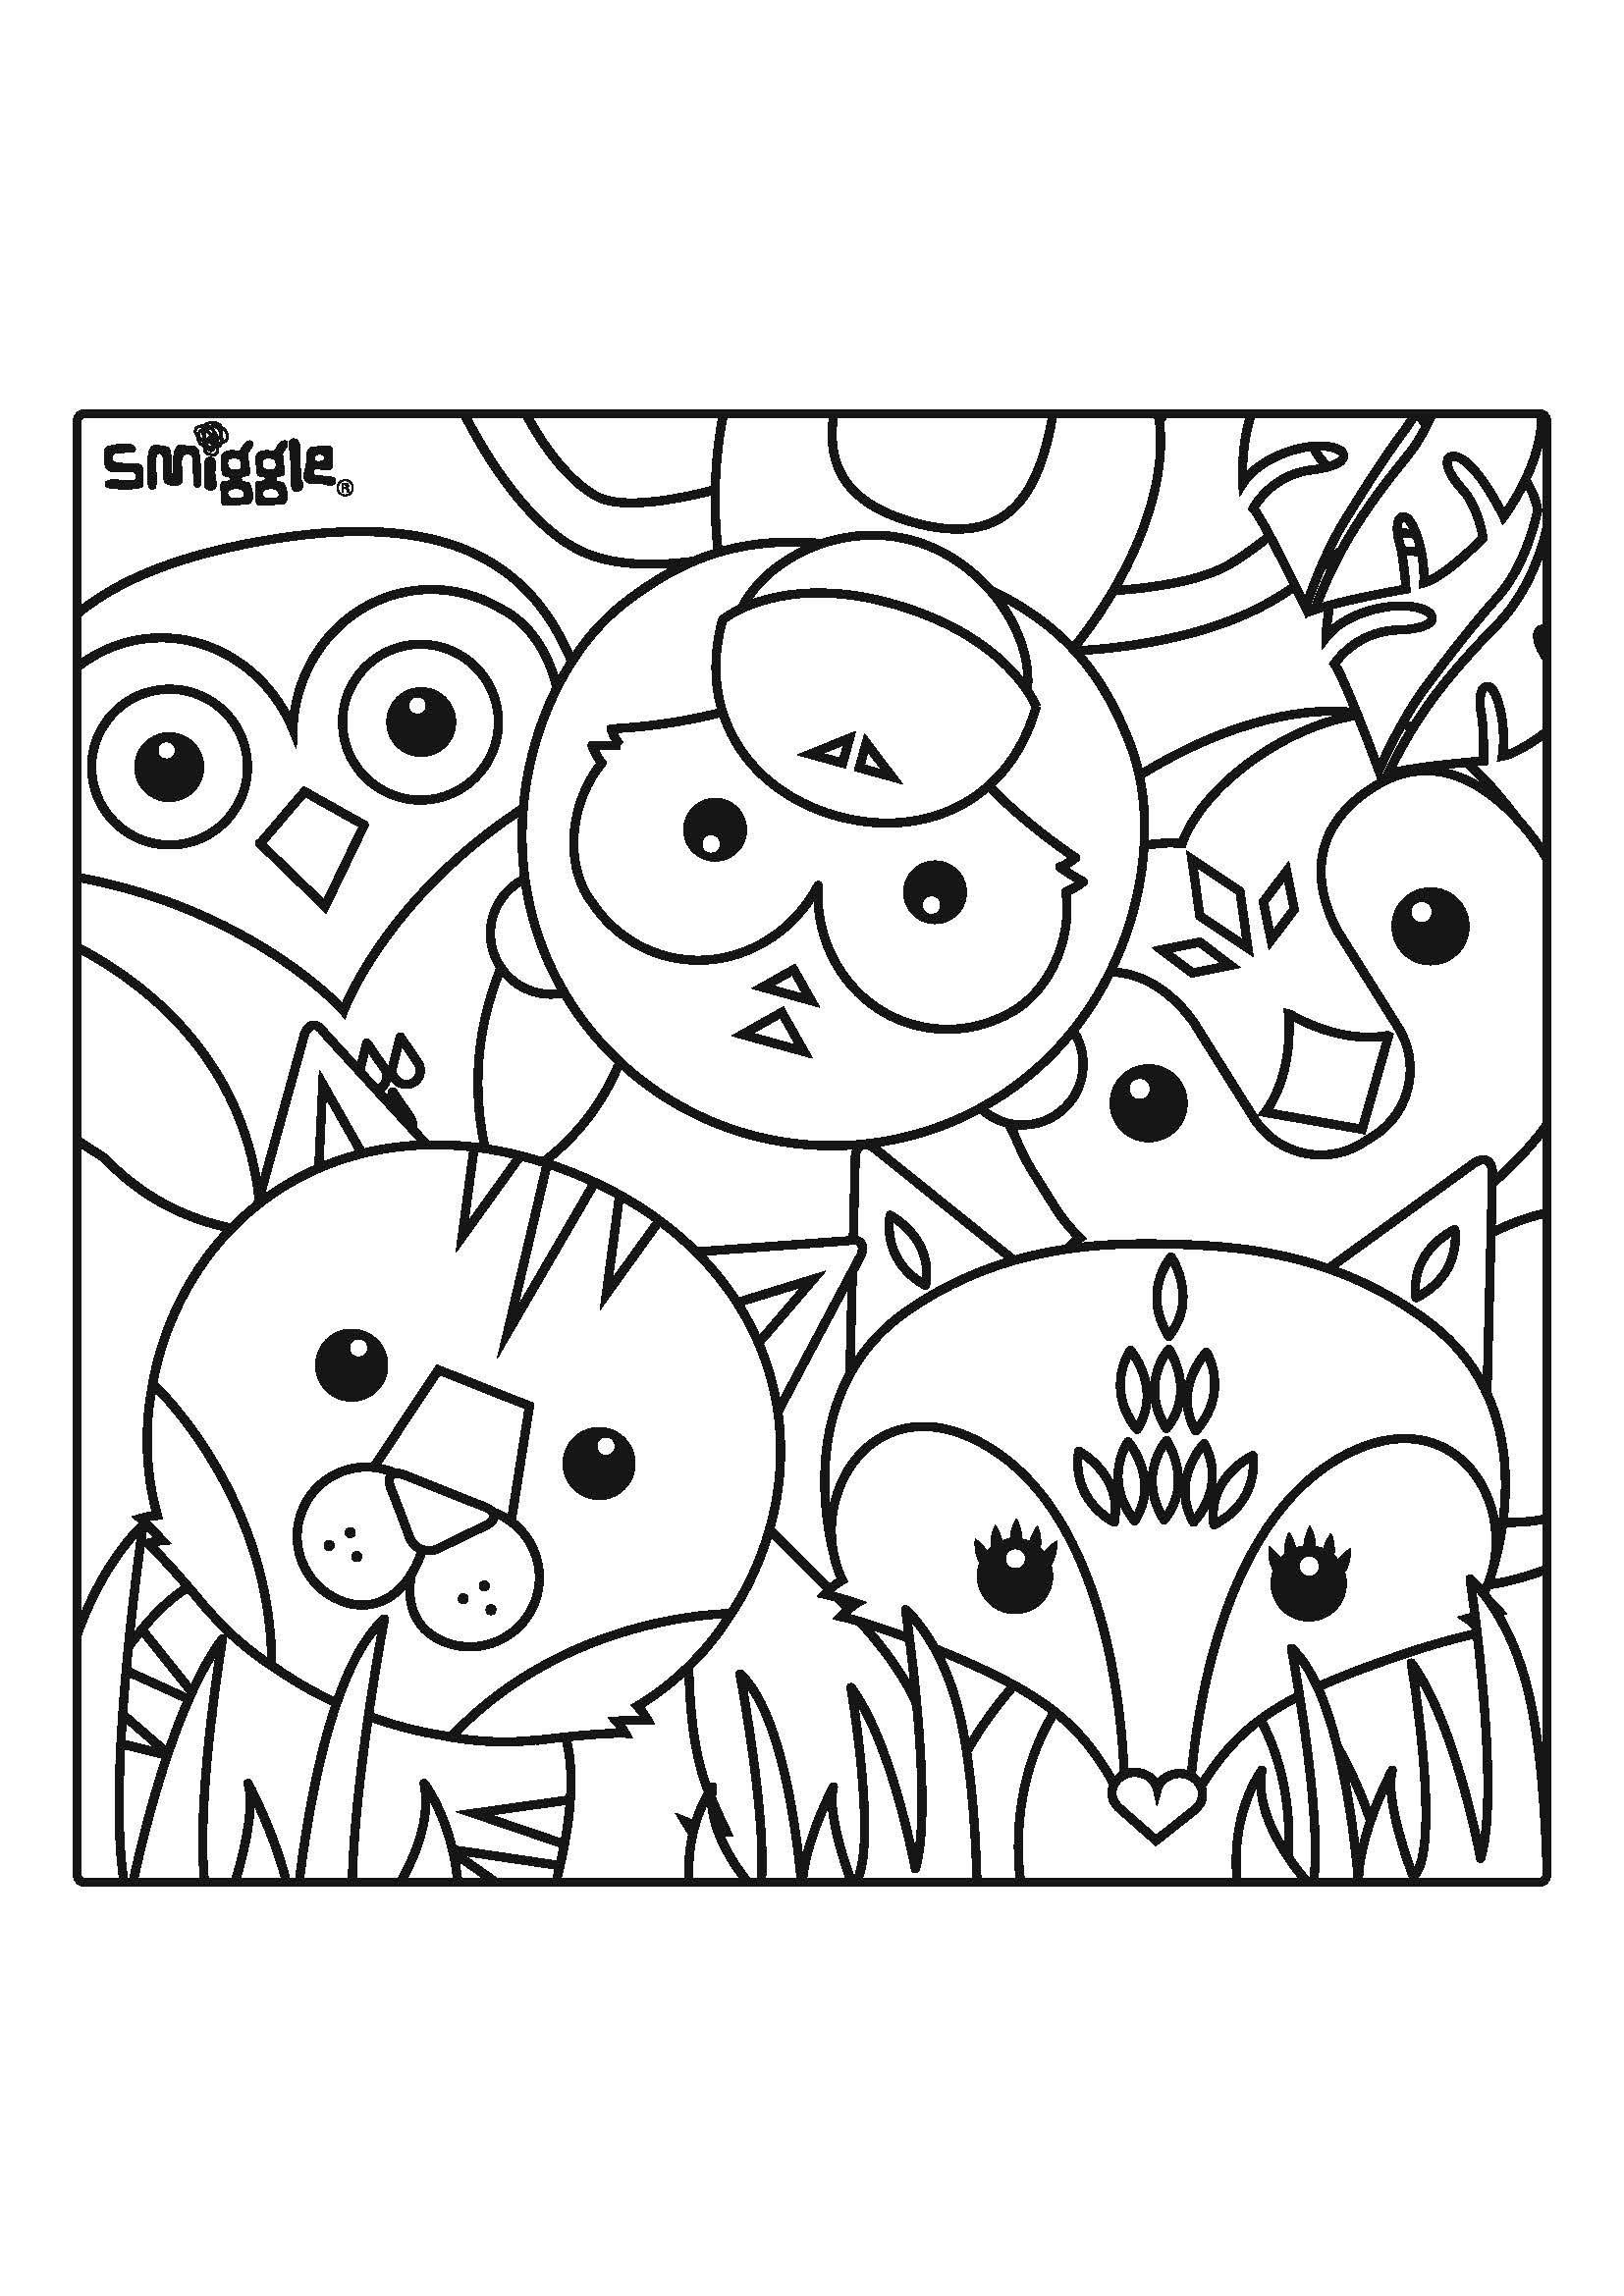 Zoo Creatures Zoo Animal Coloring Pages Coloring Pictures Of Animals Coloring Pictures [ 2339 x 1654 Pixel ]